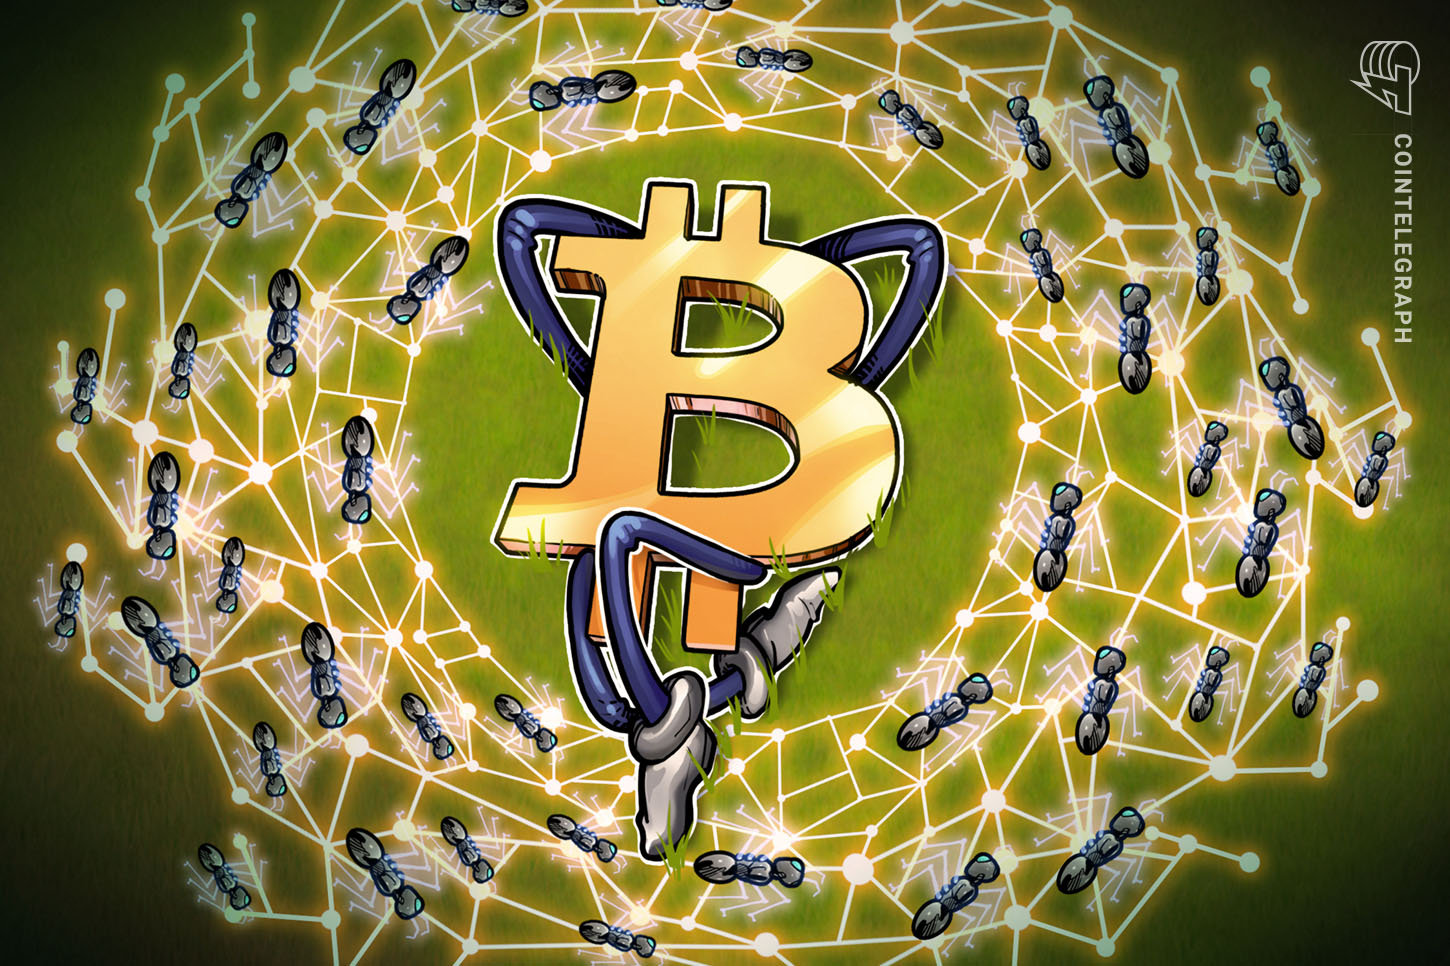 Bitcoin network node count sets new all-time high